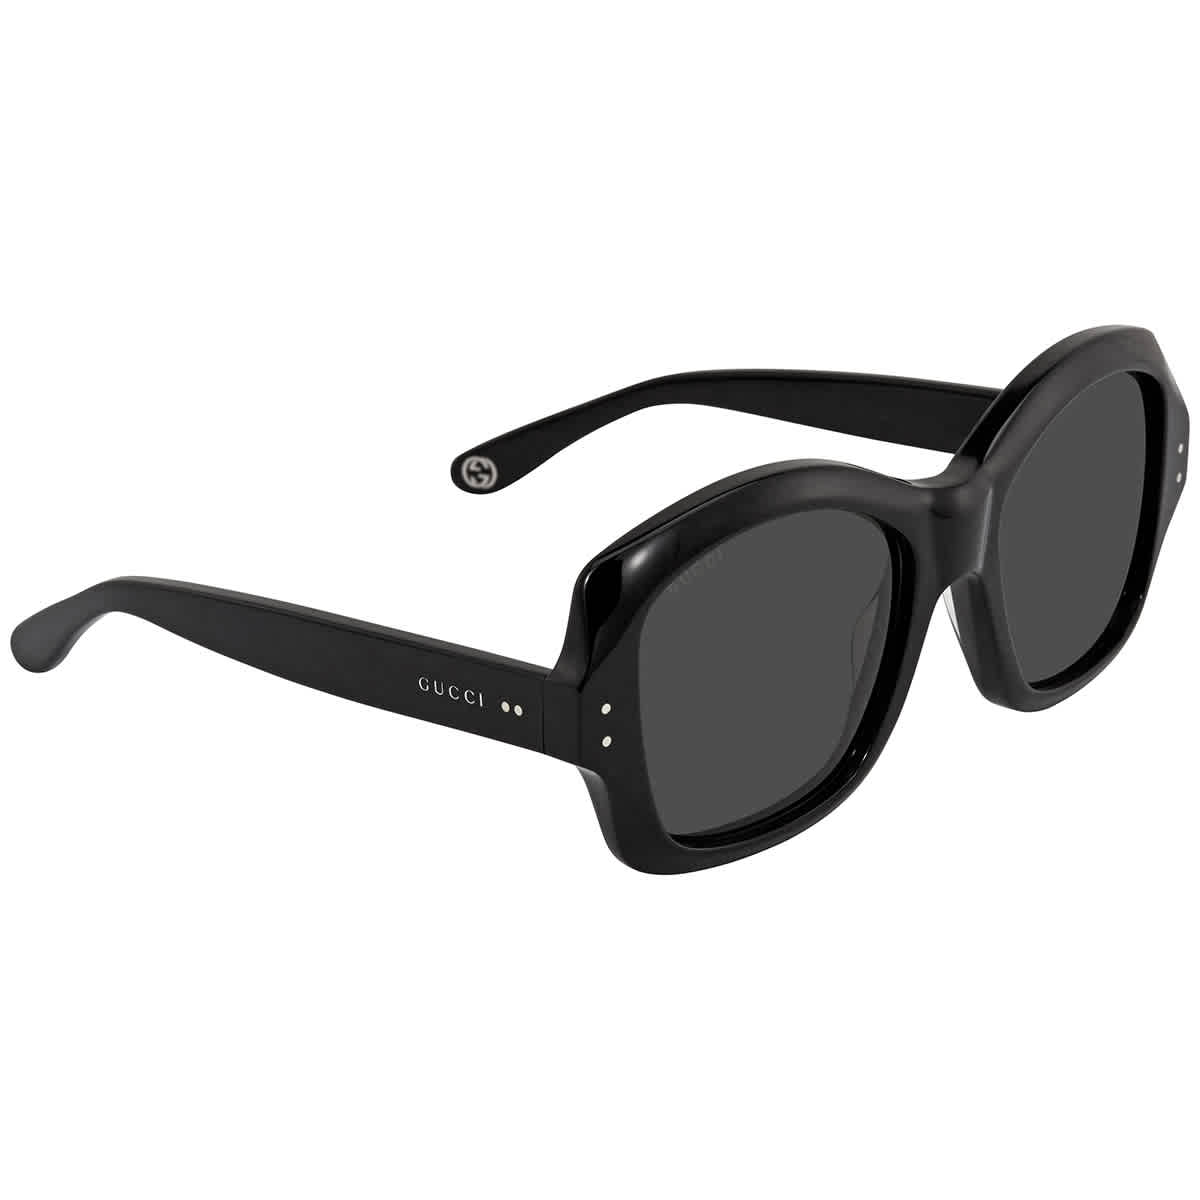 Gucci Grey Butterfly Sunglasses Gg0624s 001 57 In Black